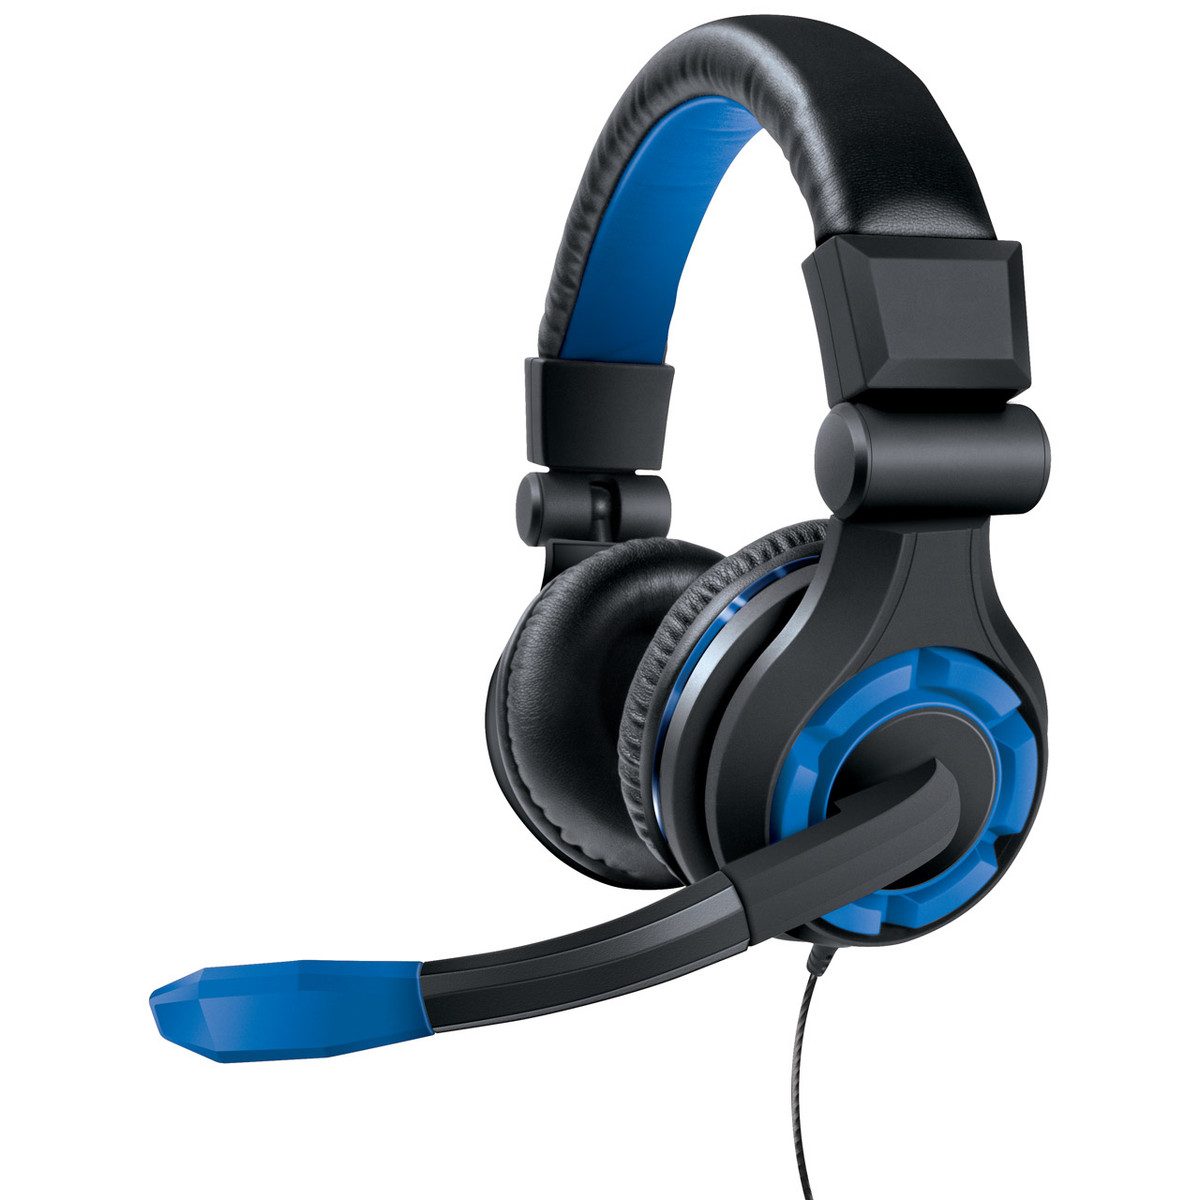 GRX-340 for PS4™